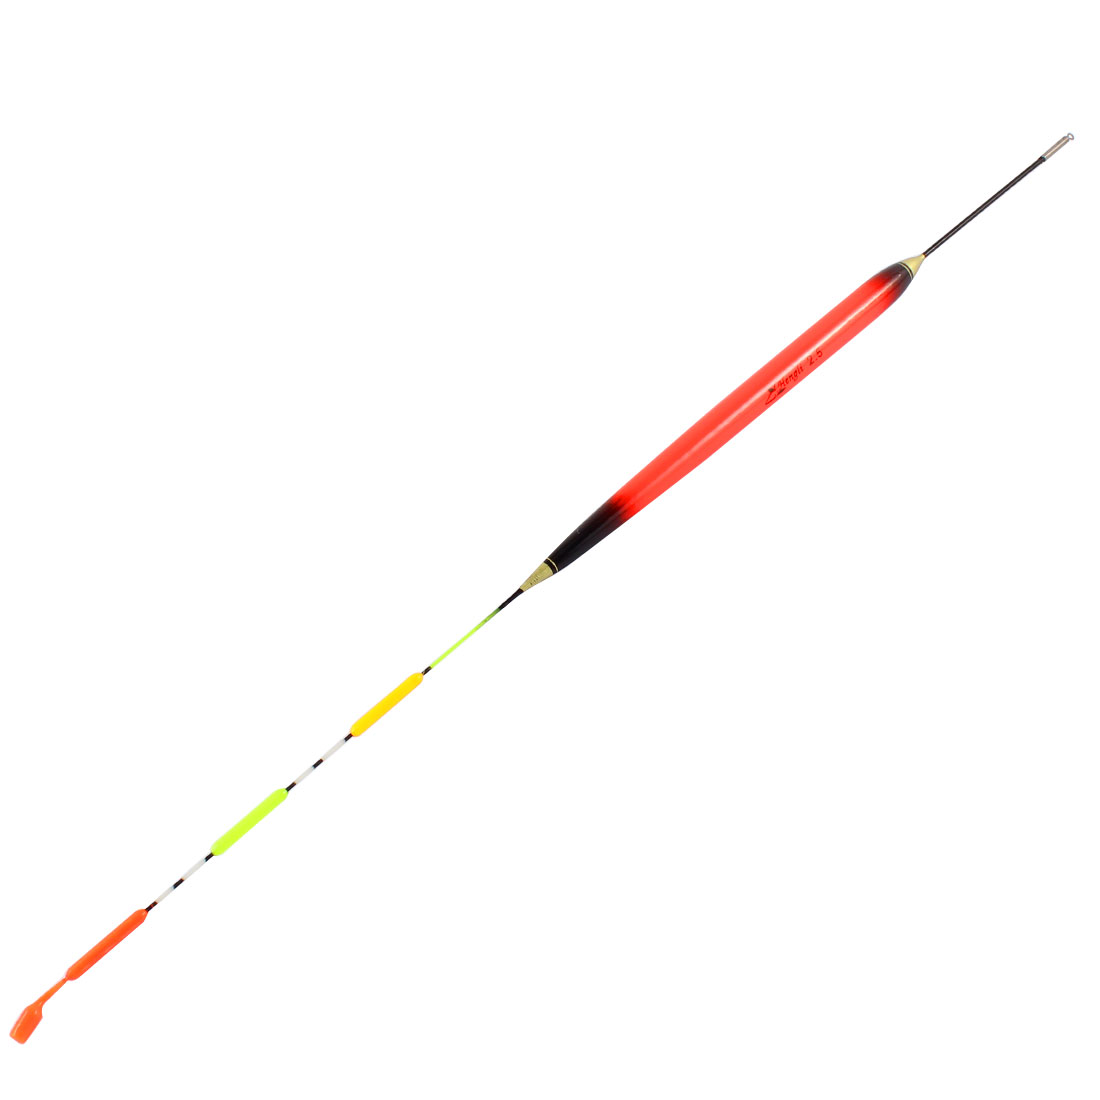 Unique Bargains Fishing Floaters Bobbers 45cm Long by